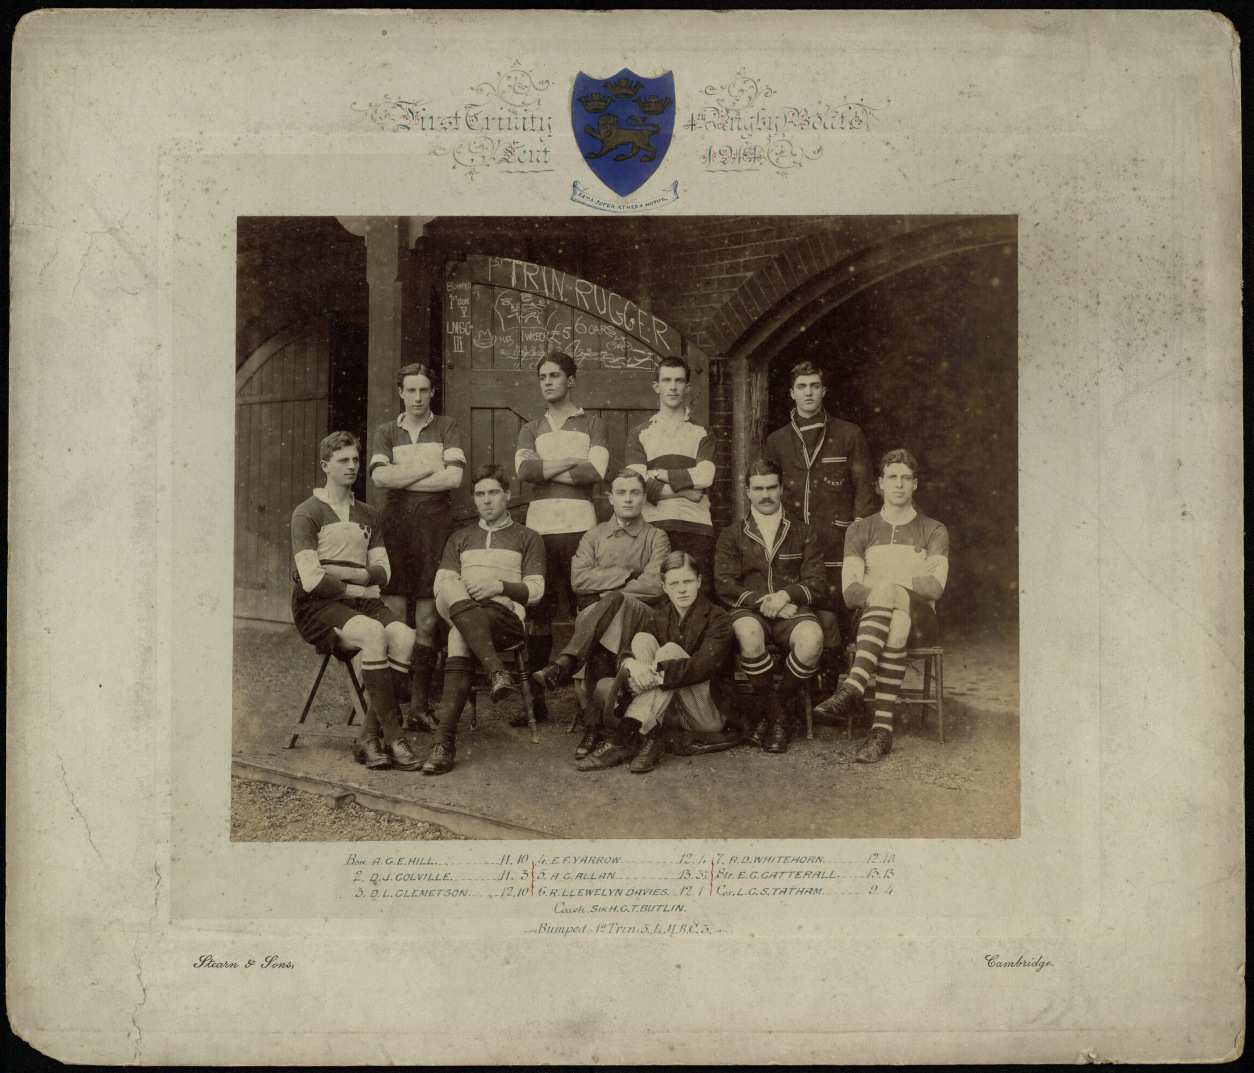 """The First The First Trinity and Fifth Boat (also known as the """"Rugger Boat"""") team that rowed in the Lent Bumps, February 1914. Courtesy of the Master and Fellows of Trinity College Cambridge, Cambridge University."""